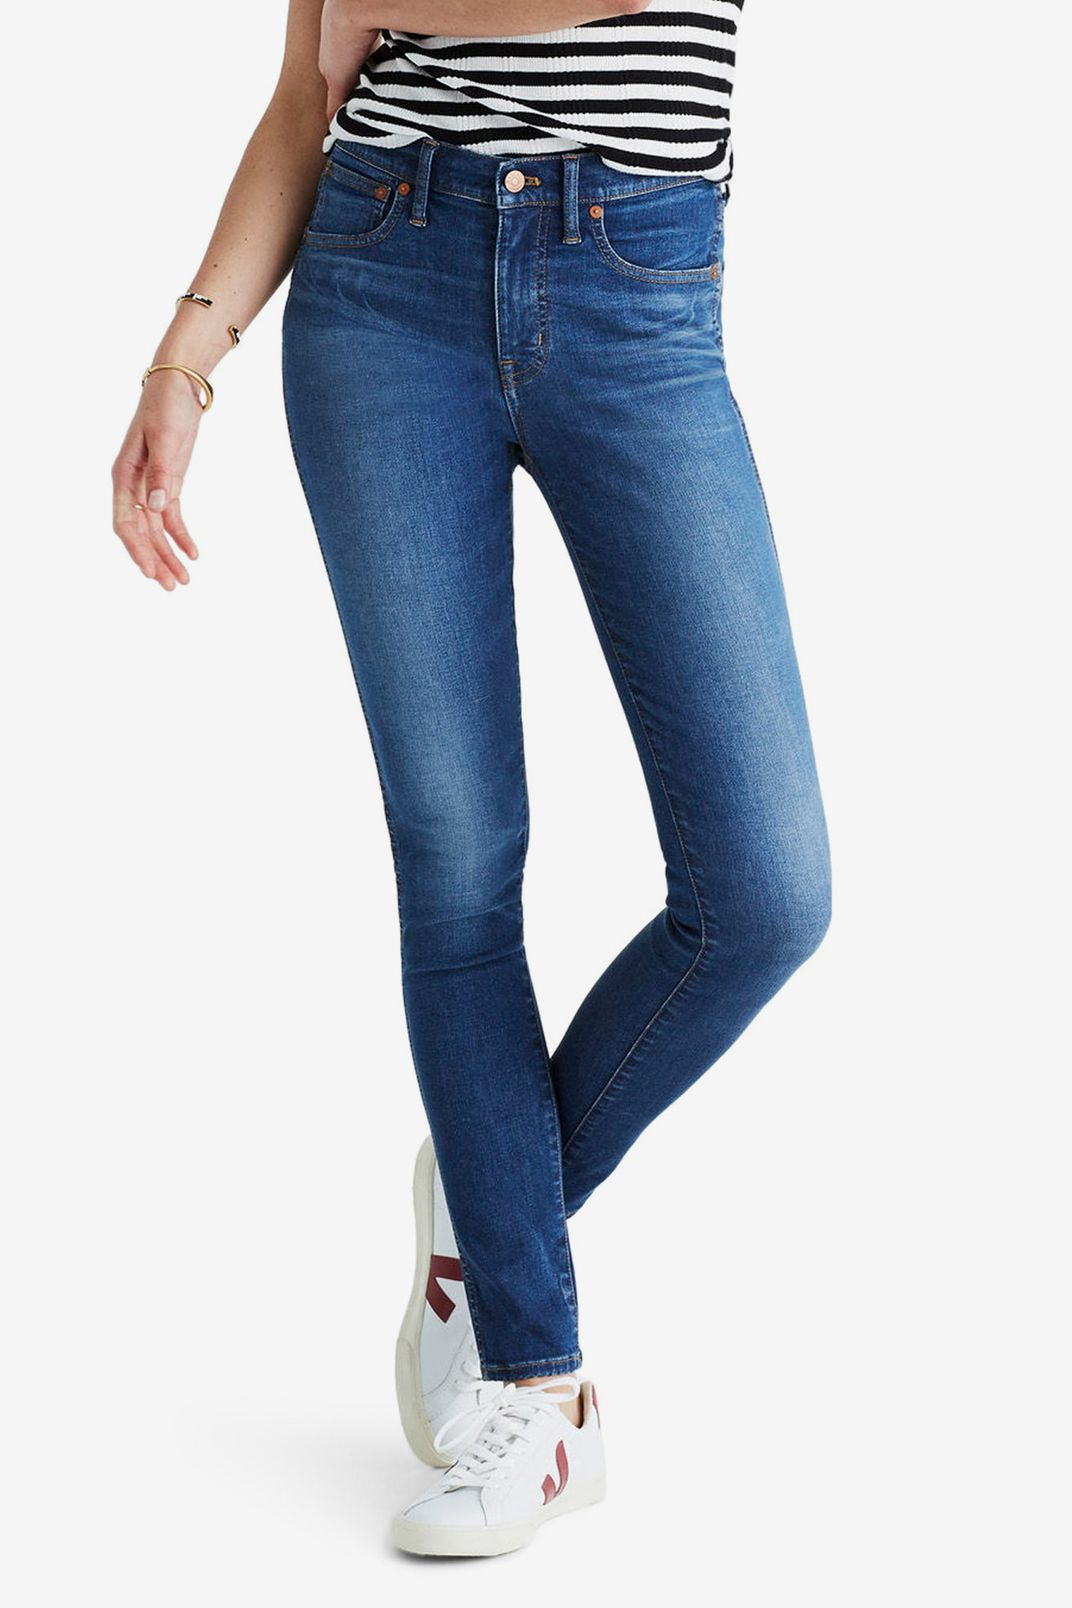 6cb00683d68 30 Best Jeans for Women of All Sizes and Styles 2019